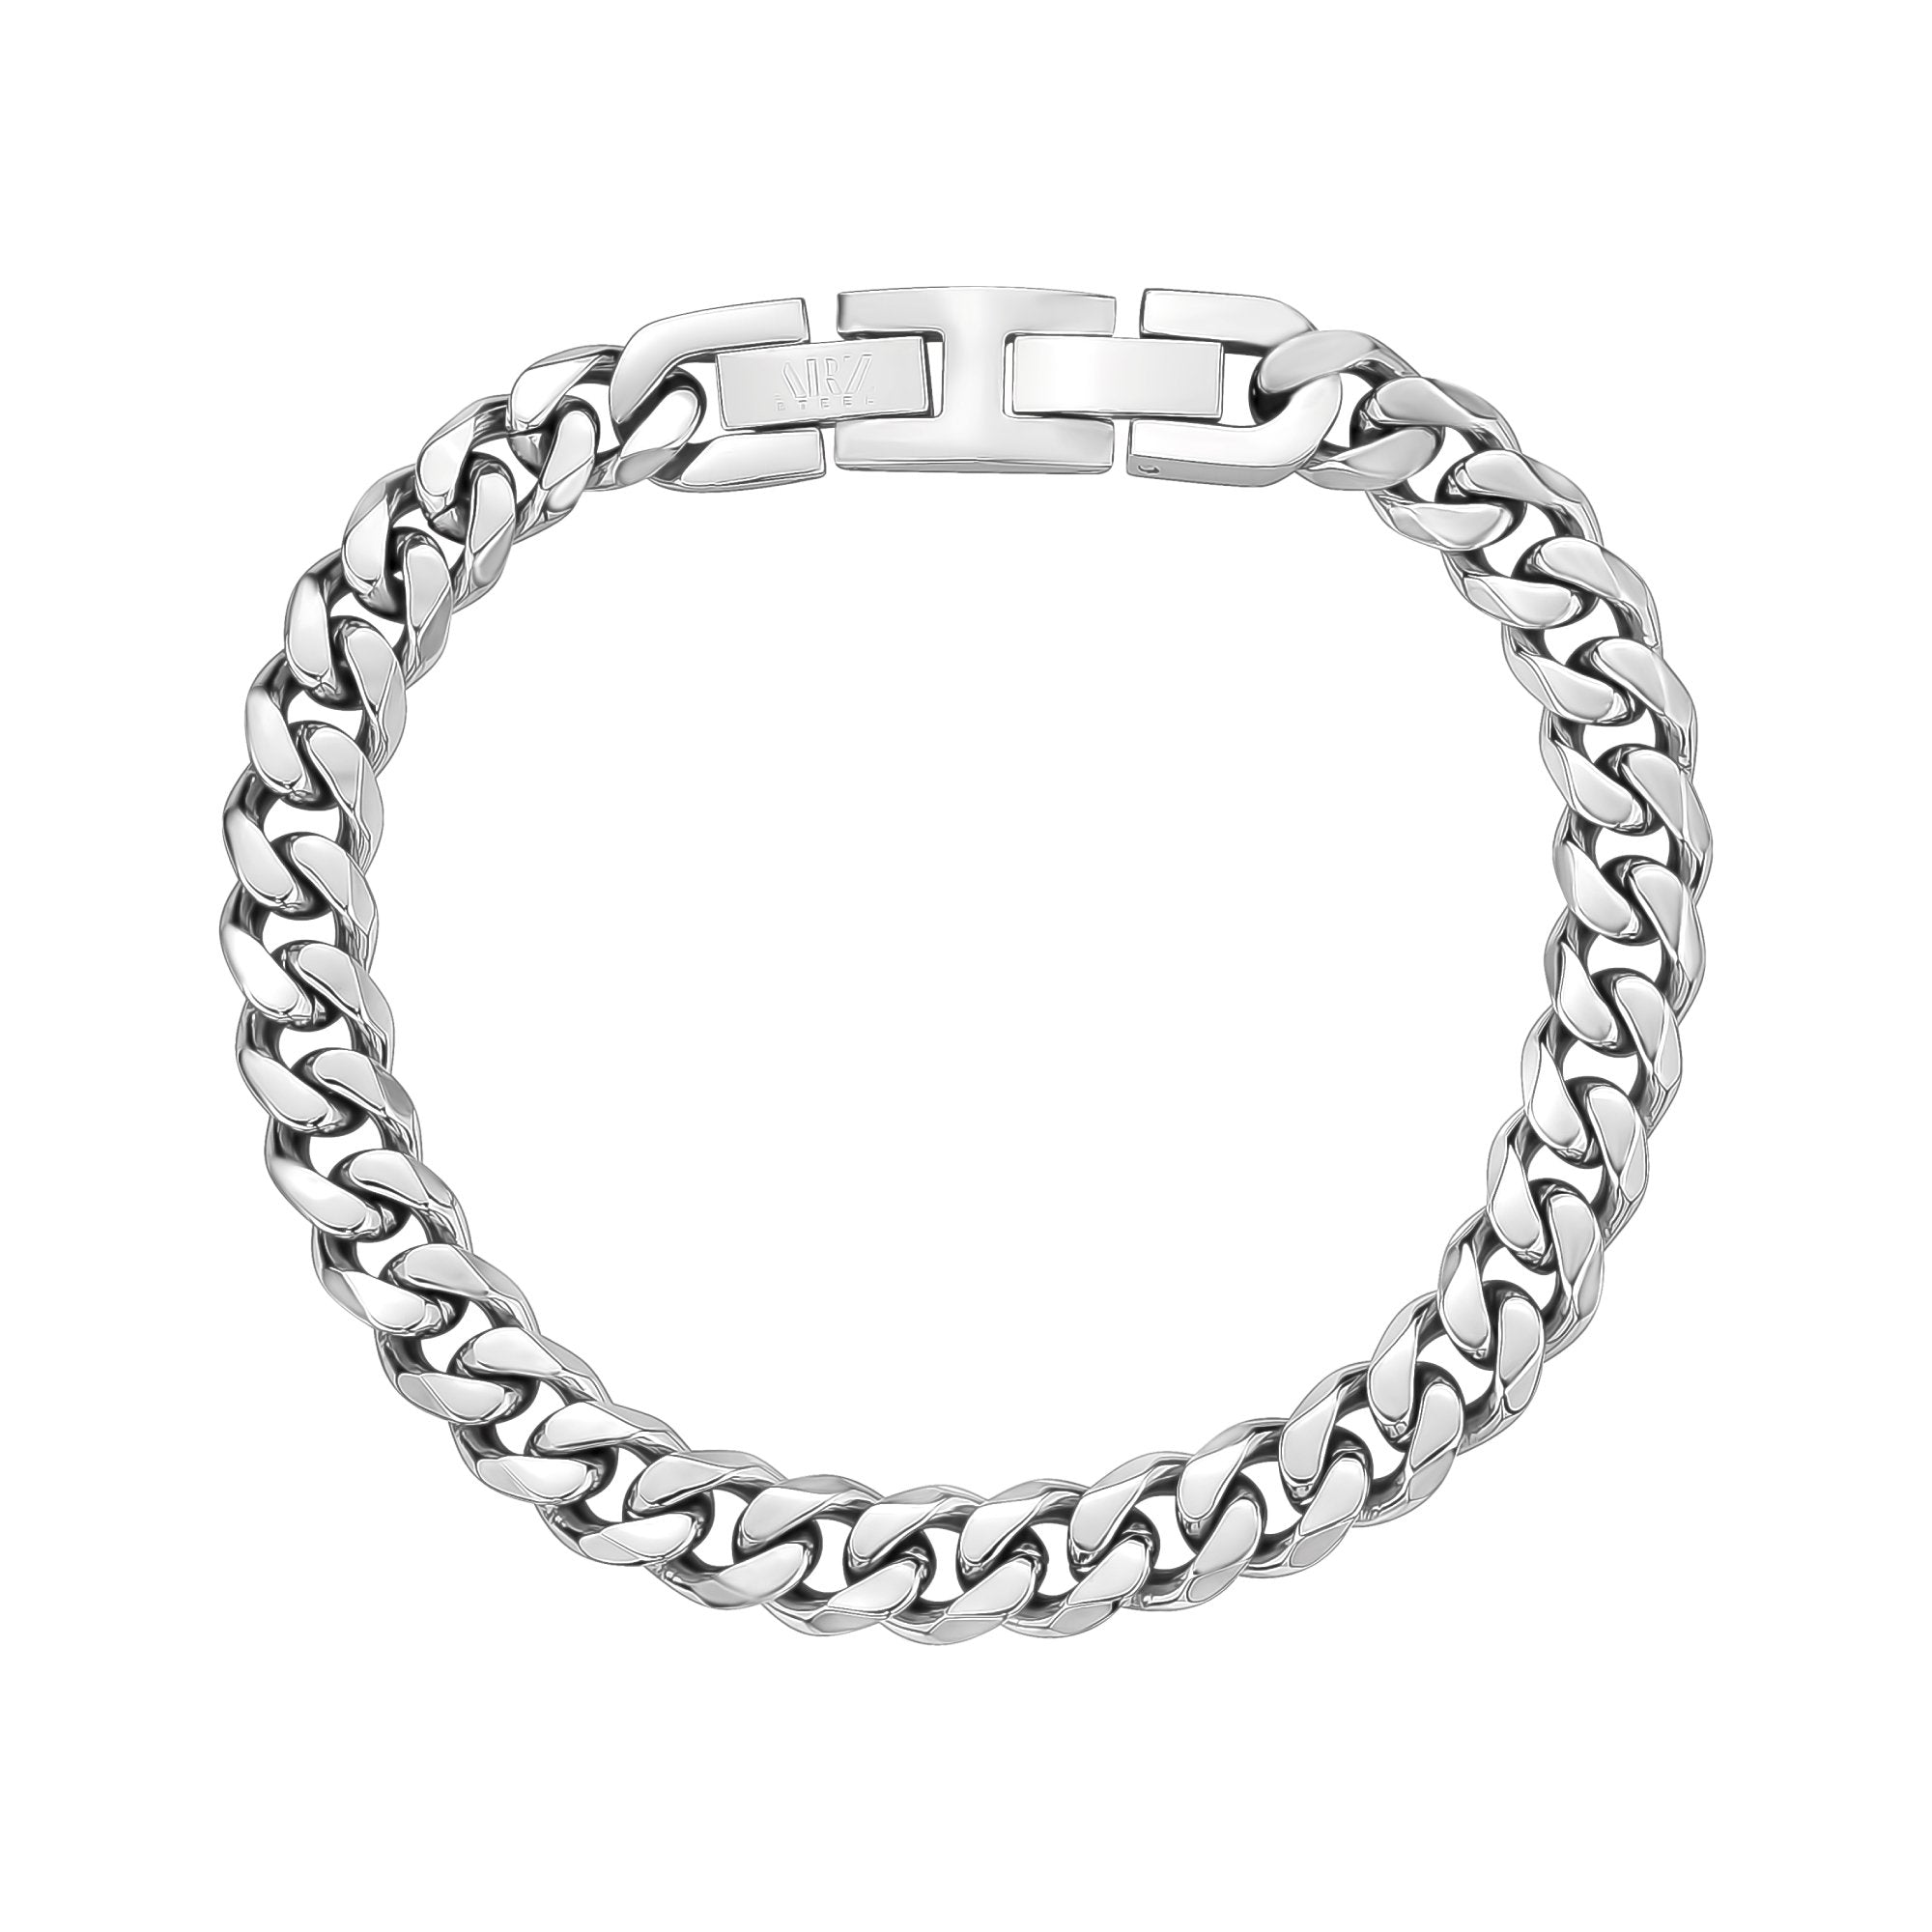 Mens Steel Bracelets - 8mm Stainless Steel Cuban Link Bracelet